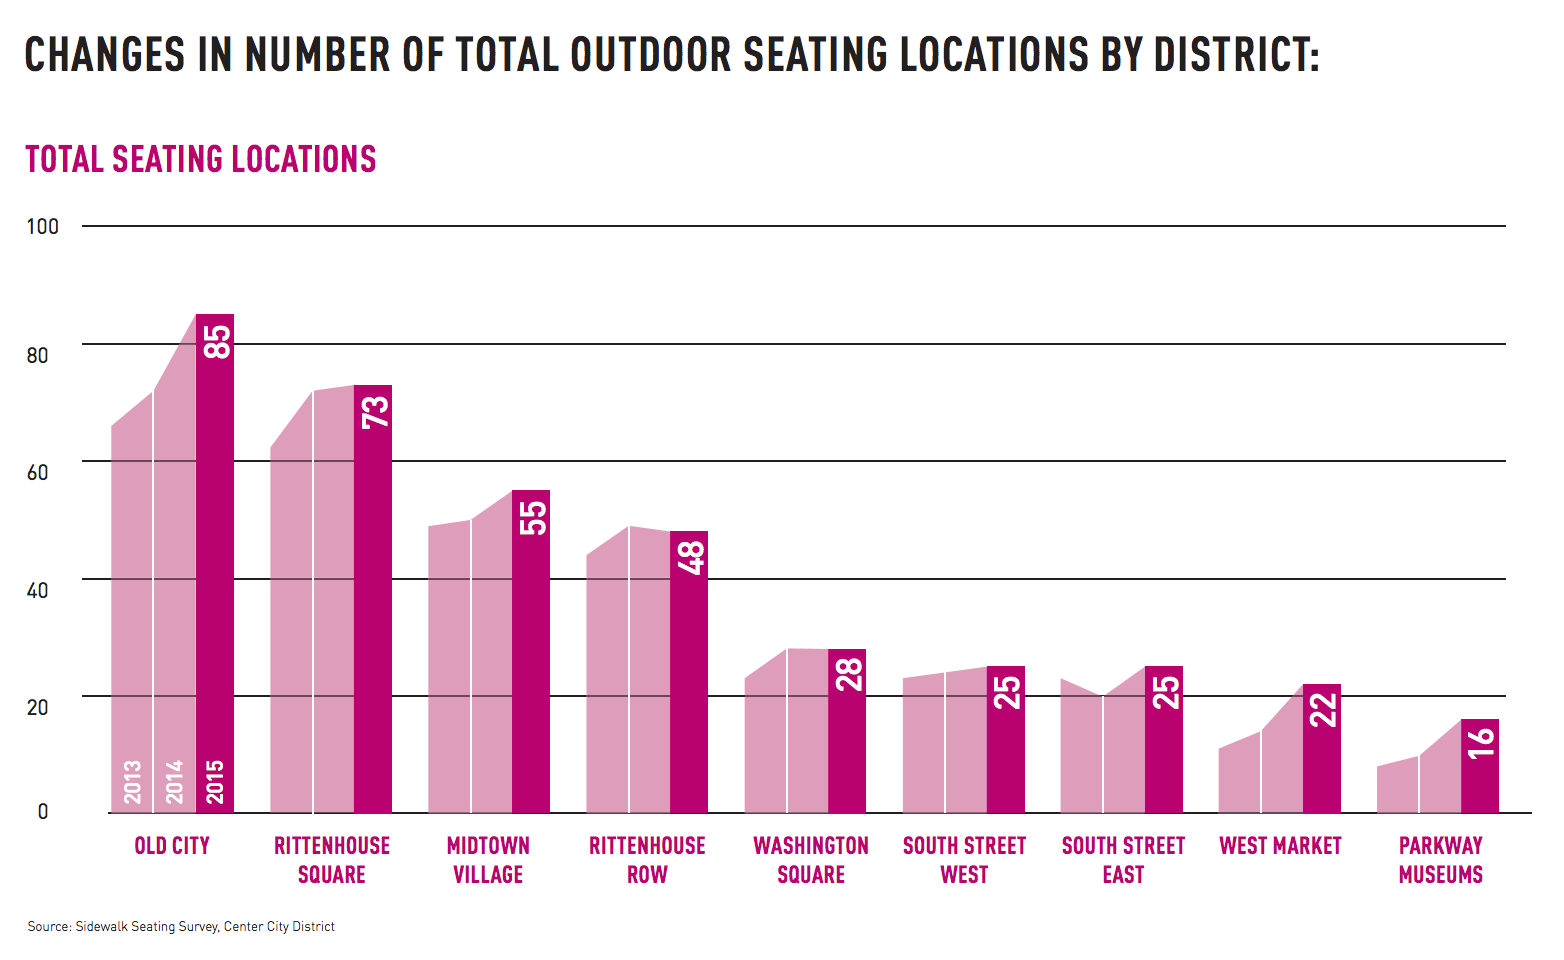 Changes in number of total outdoor seating locations by district